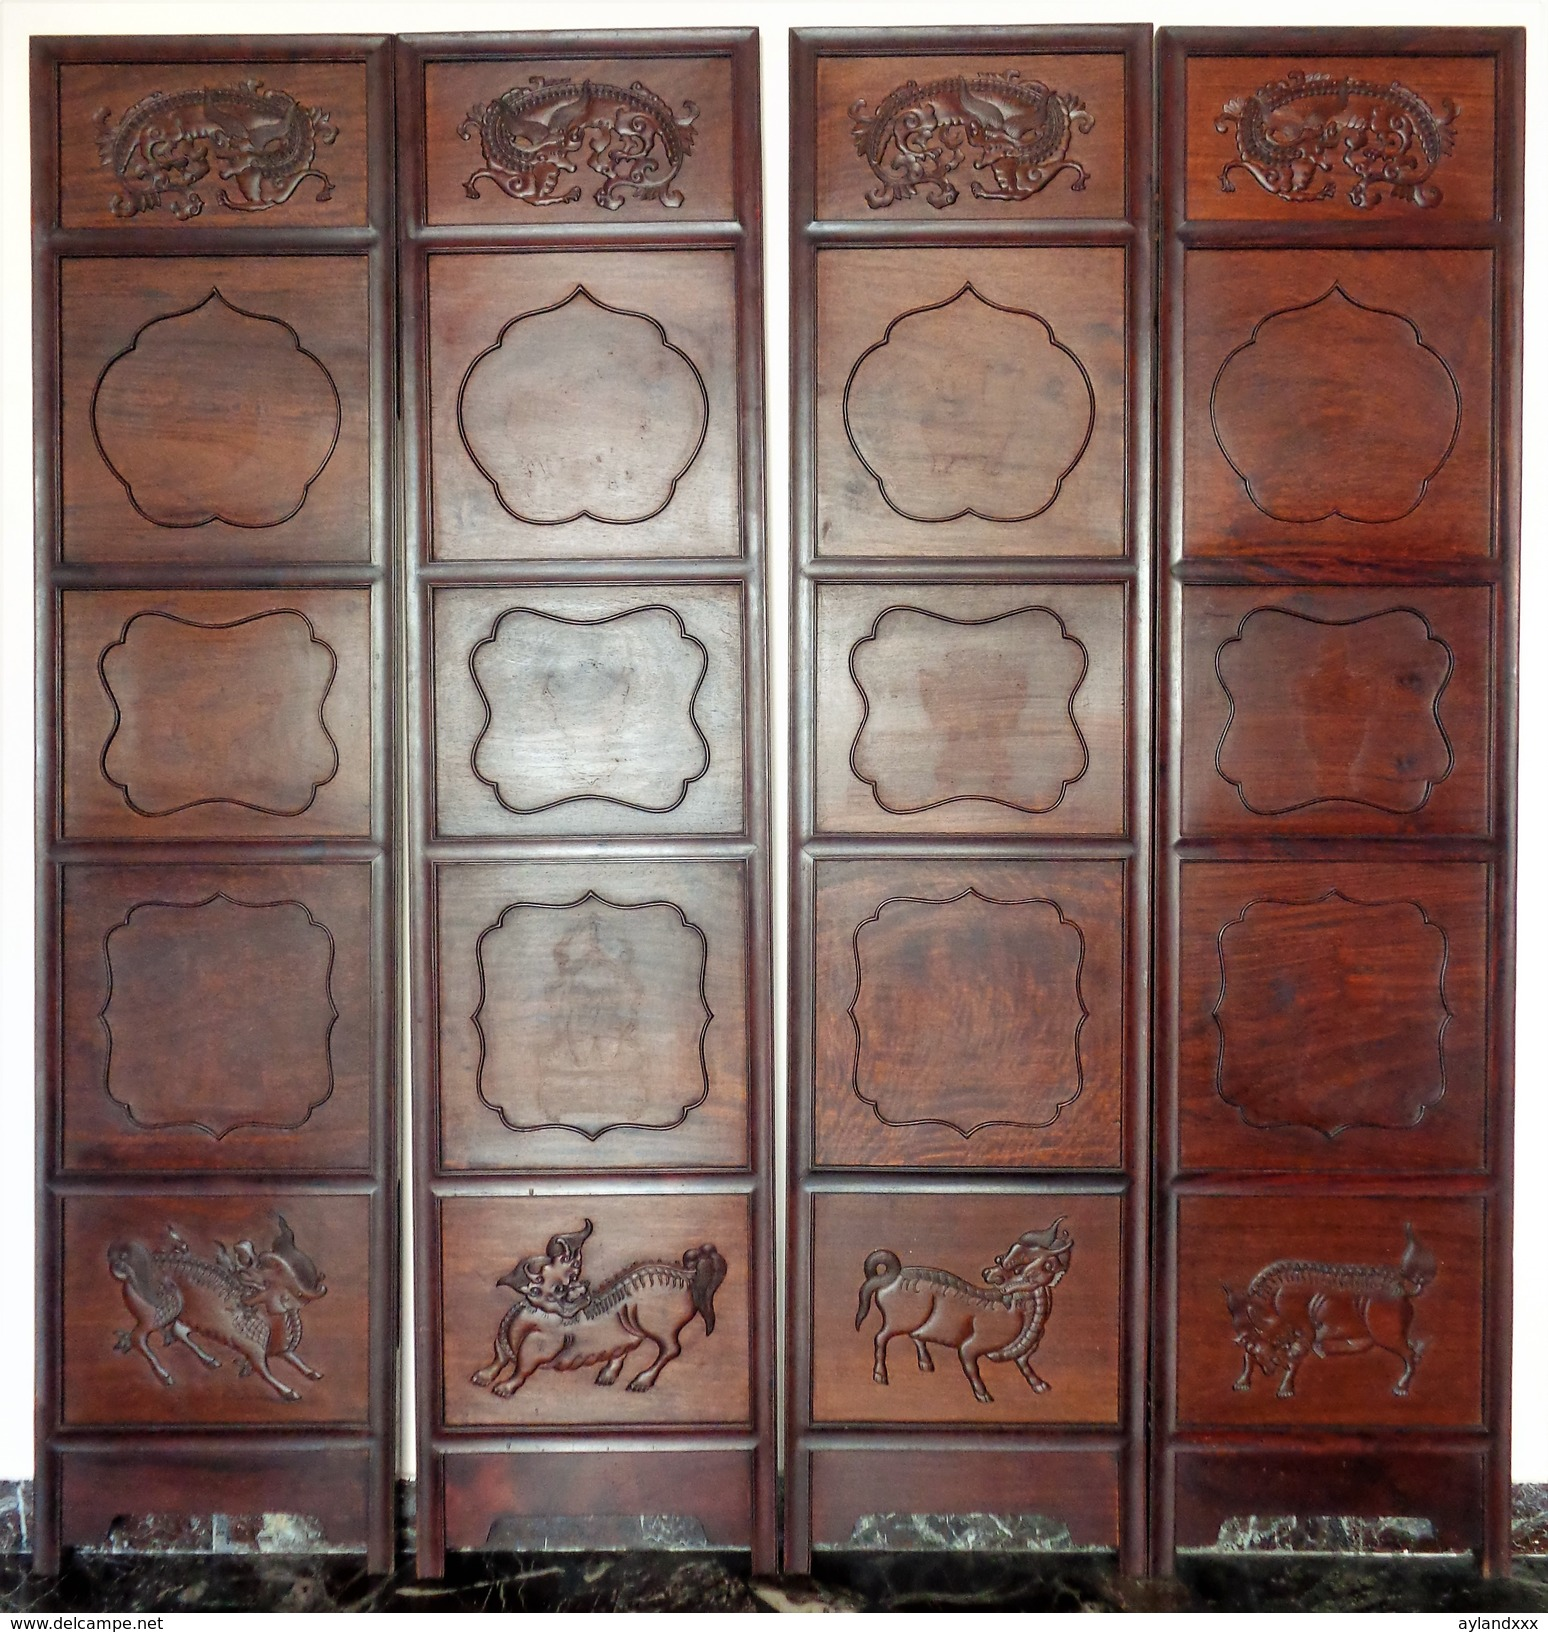 CINA (China): Fine Chinese Panels Screen Made In Hardwood (Rosewood ?) - Arte Orientale